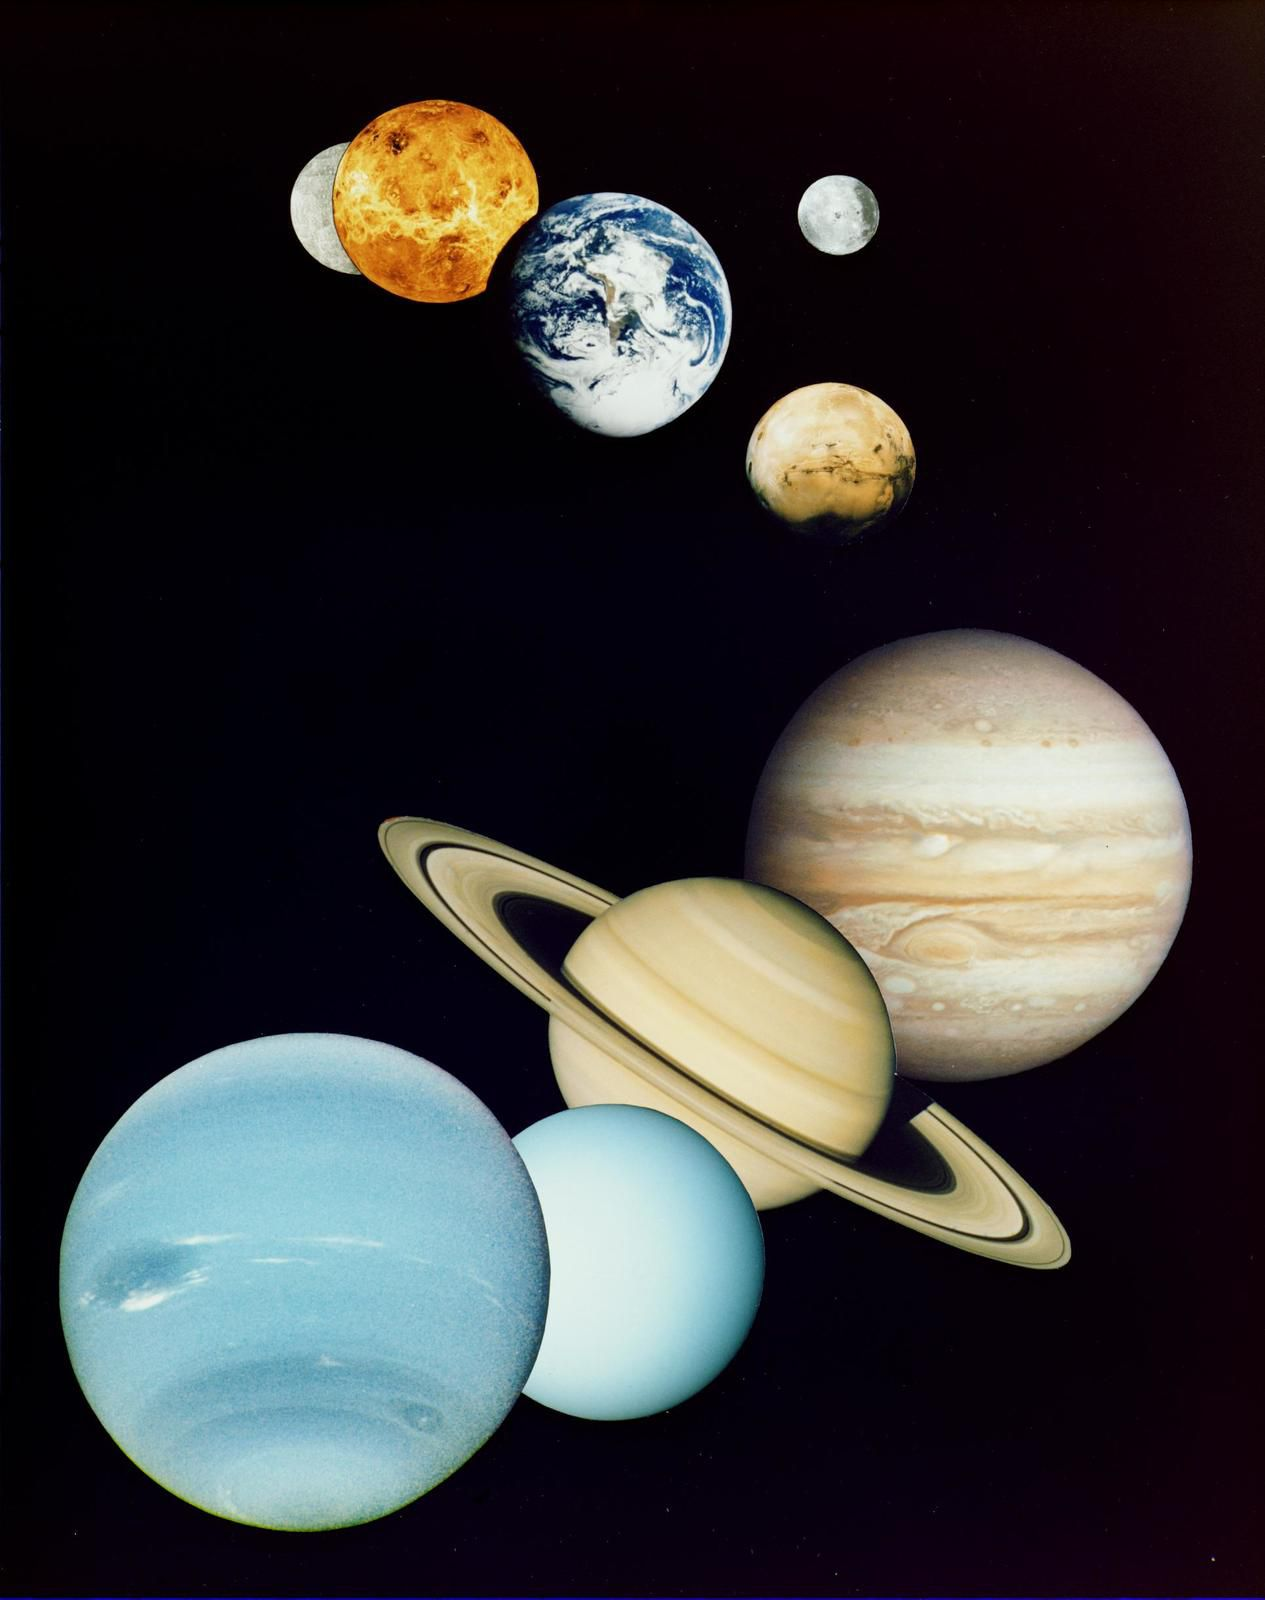 Mercury, Venus, Earth and Moon, Mars, Jupiter, Saturn, Uranus and Neptune (NASA/JPL)